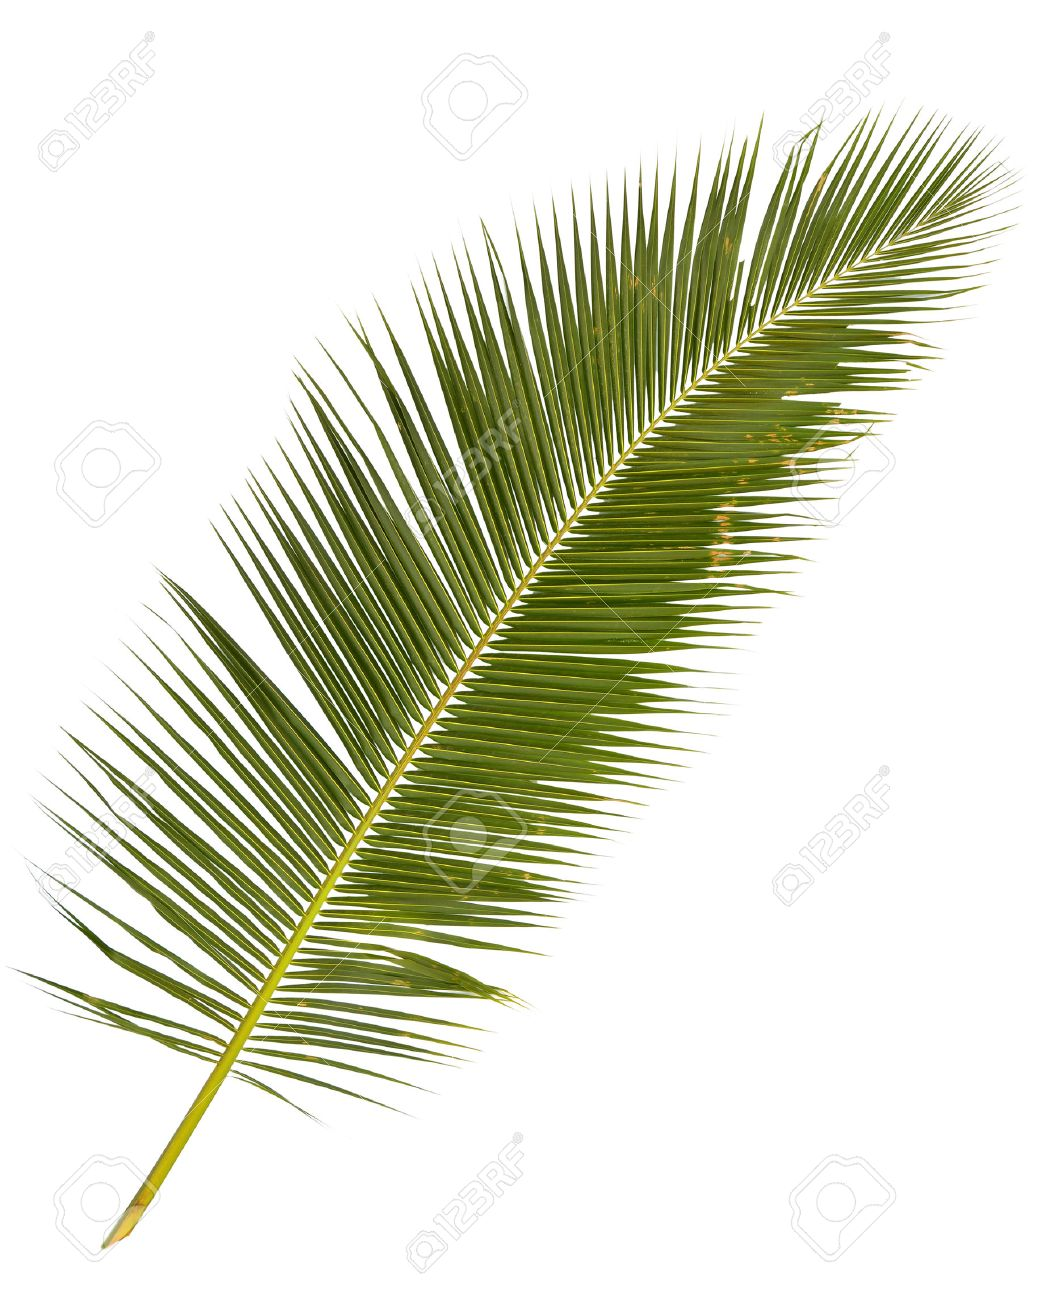 Palm Tree Leaves Isolated On White Backgroud Stock Photo Picture And Royalty Free Image Image 35557095